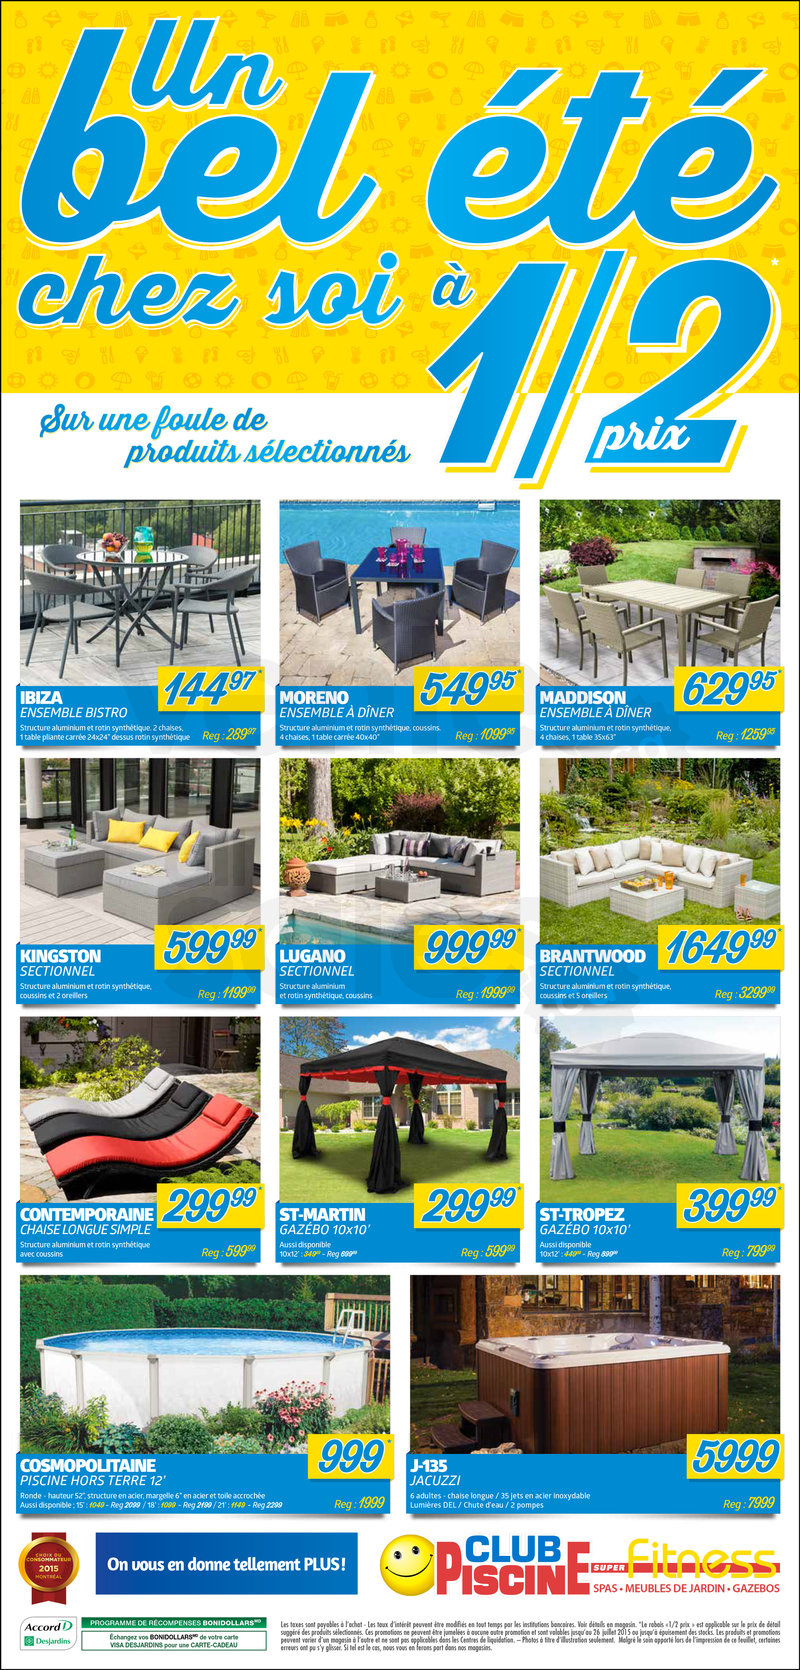 Club piscine 50 produits s lectionn s for Club piscine a laval